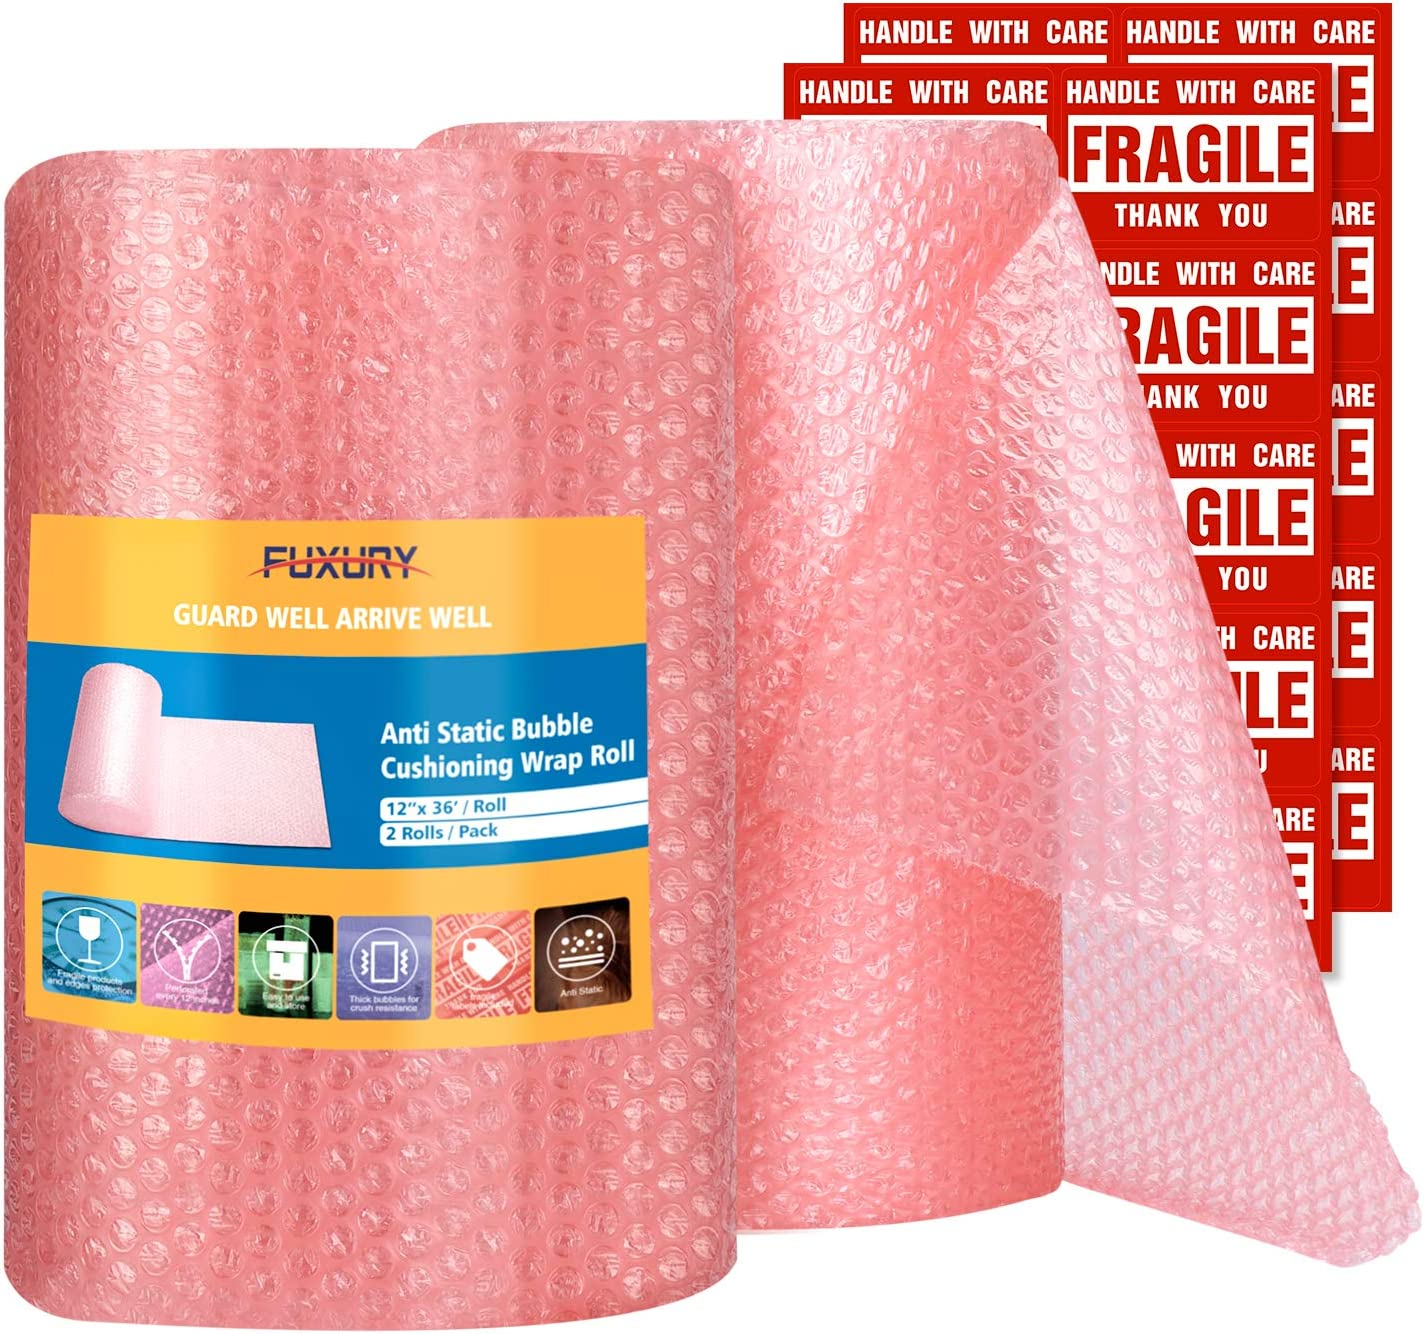 "Fuxury Pink Anti-Static Bubble Wrap Roll 12"" Bubble Cushioning Wrap Roll 2 Rolls 72 Feet Total,Perforated Every 12"",Included 20 Fragile Stickers for Packaging Moving Supplies"